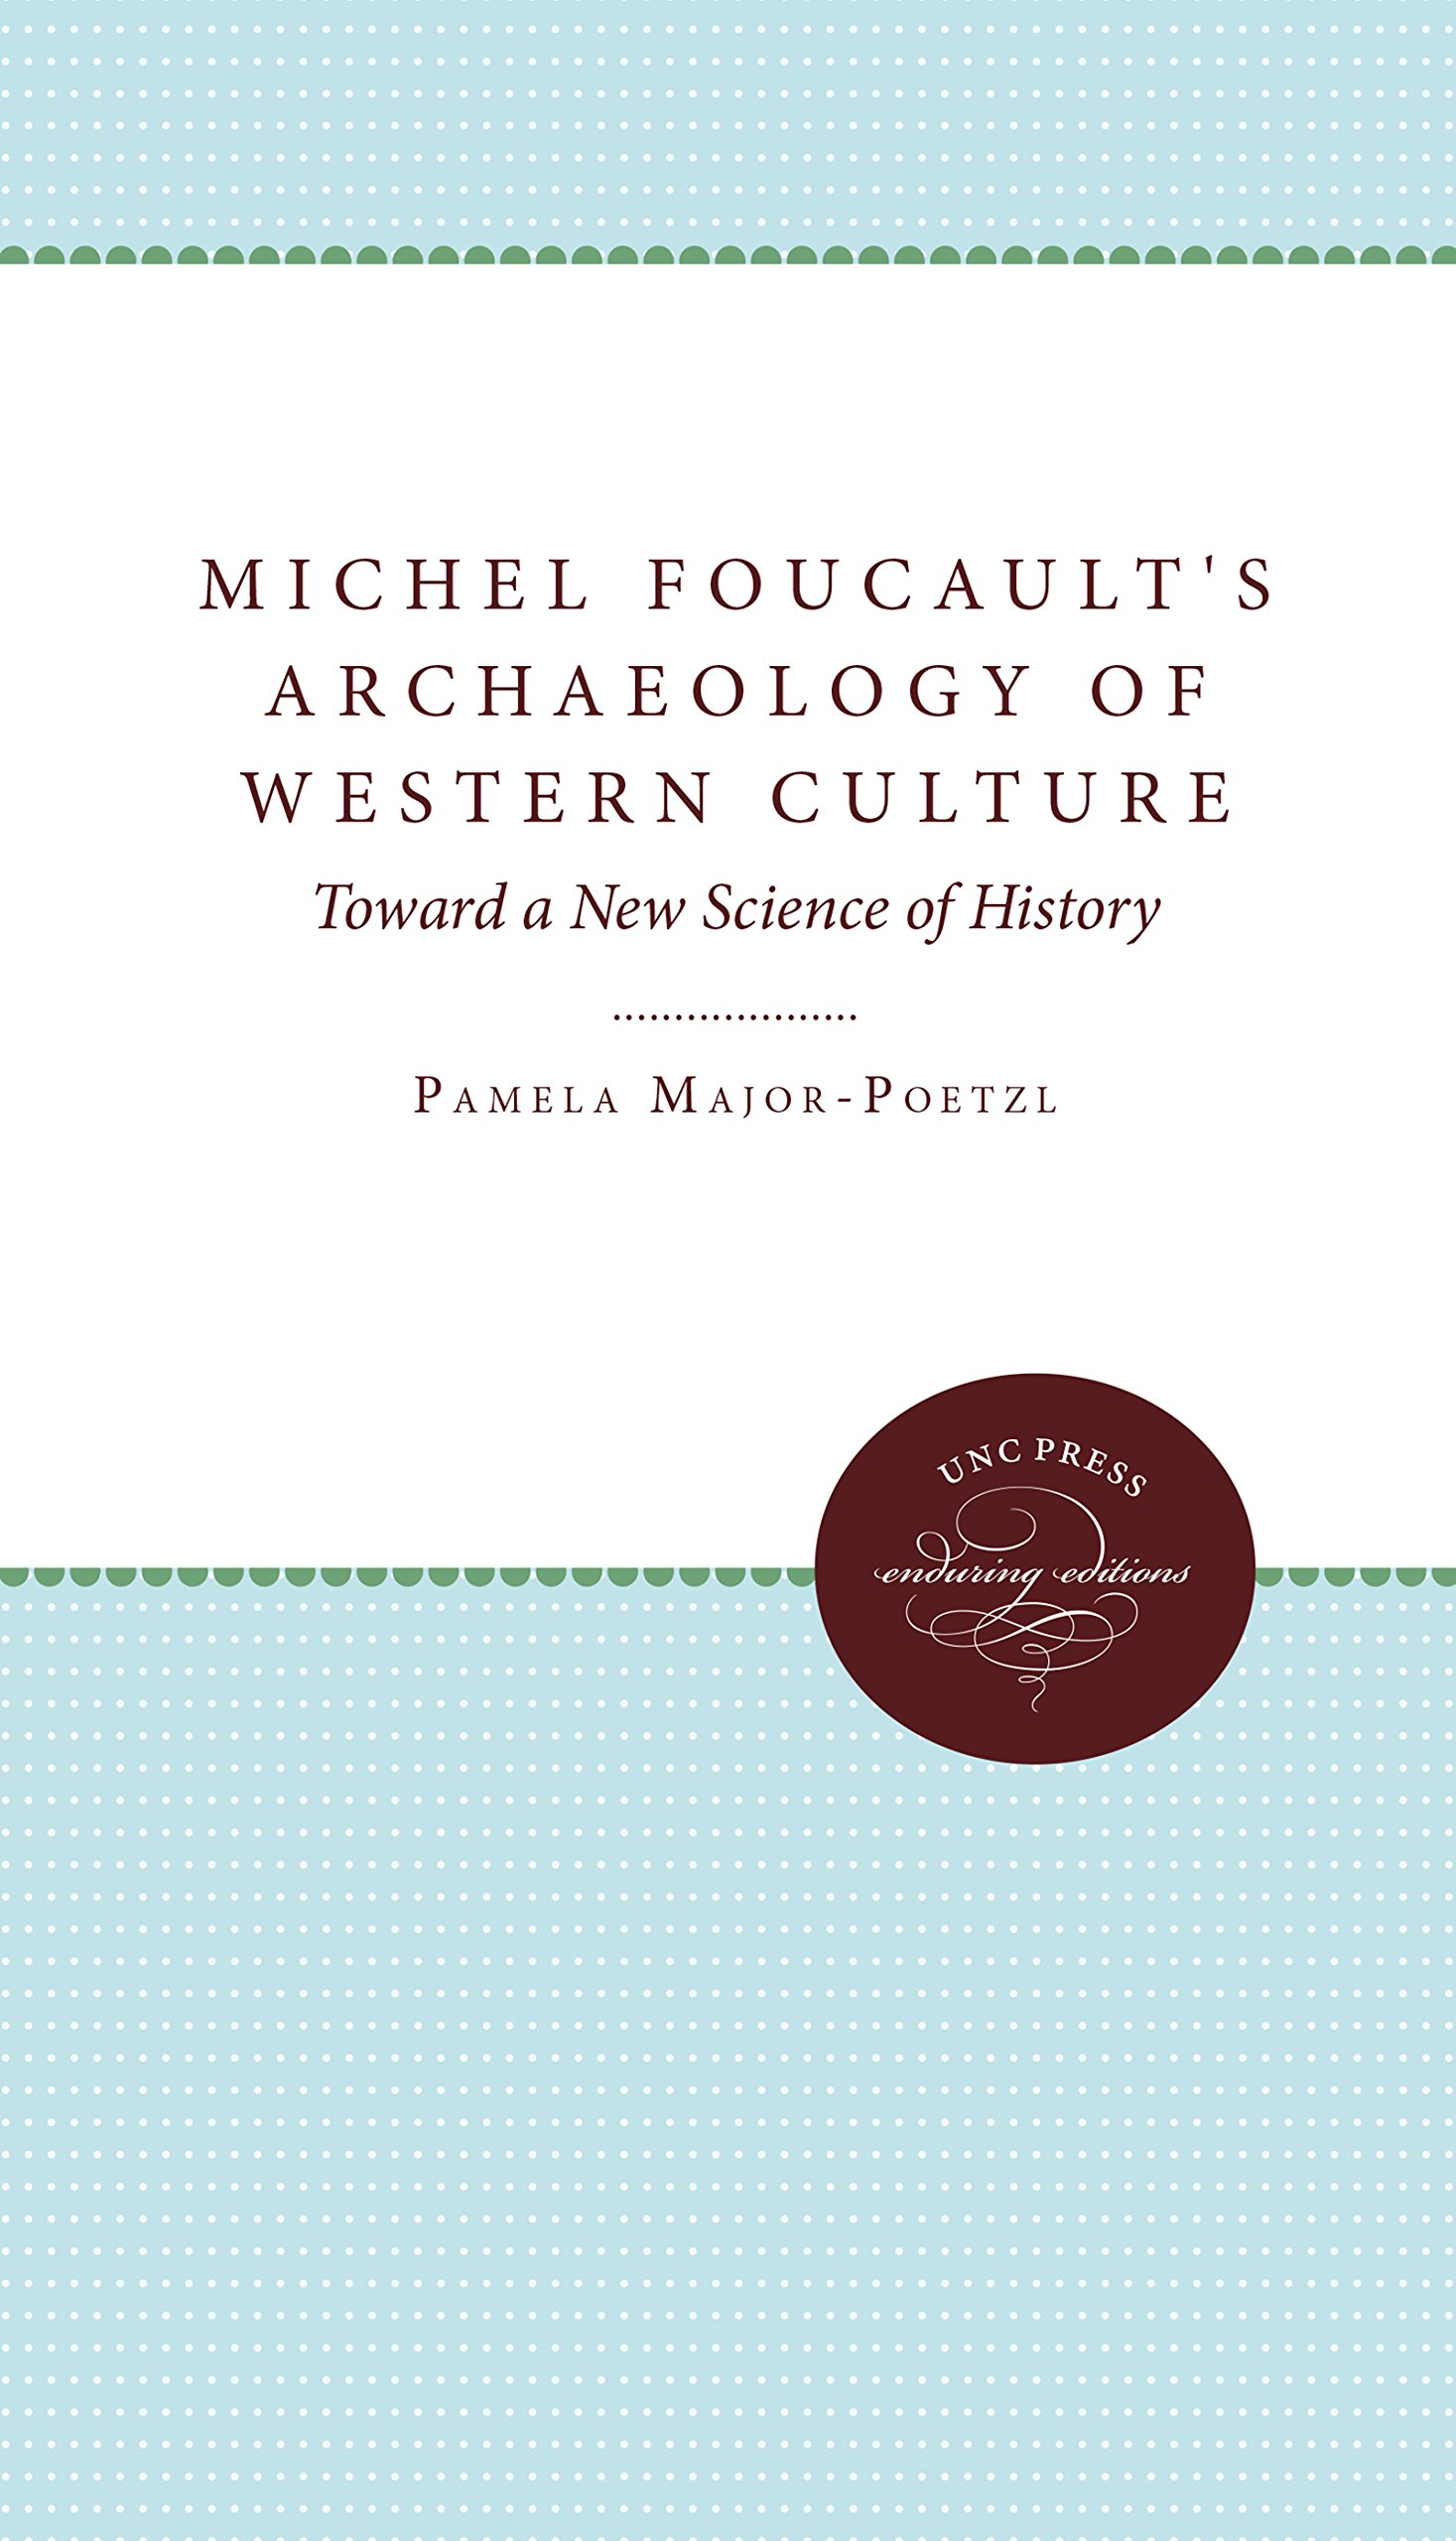 Michel Foucault's Archaeology of Western Culture